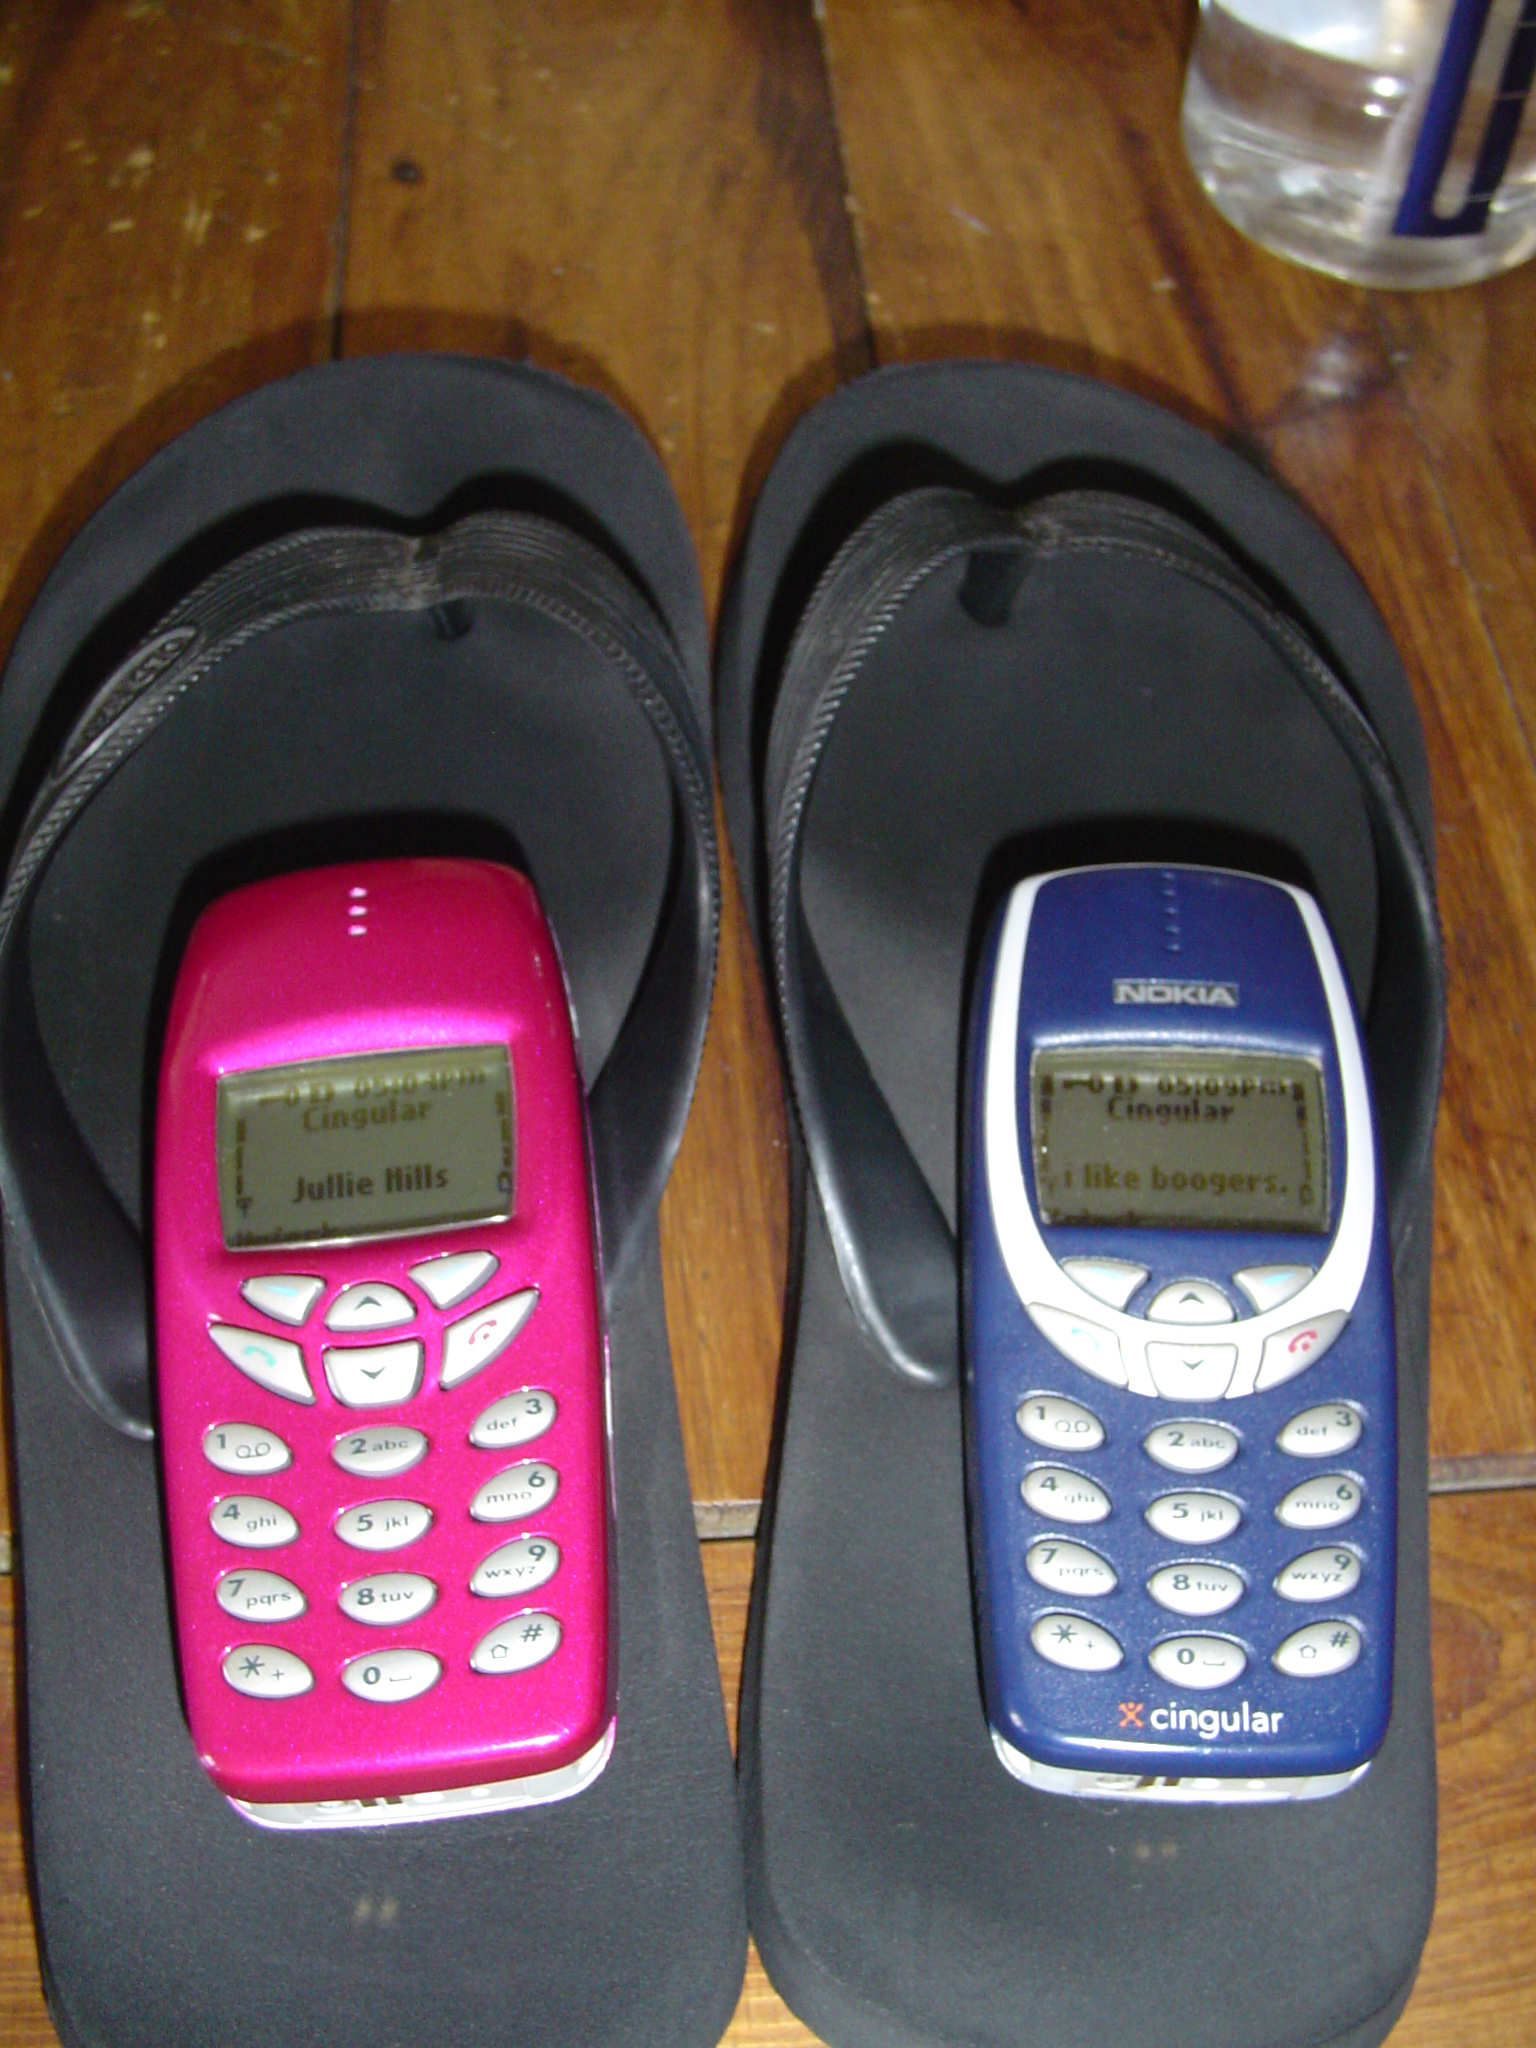 8.30.03 We've had matching cell phones for the last 16 years!!!